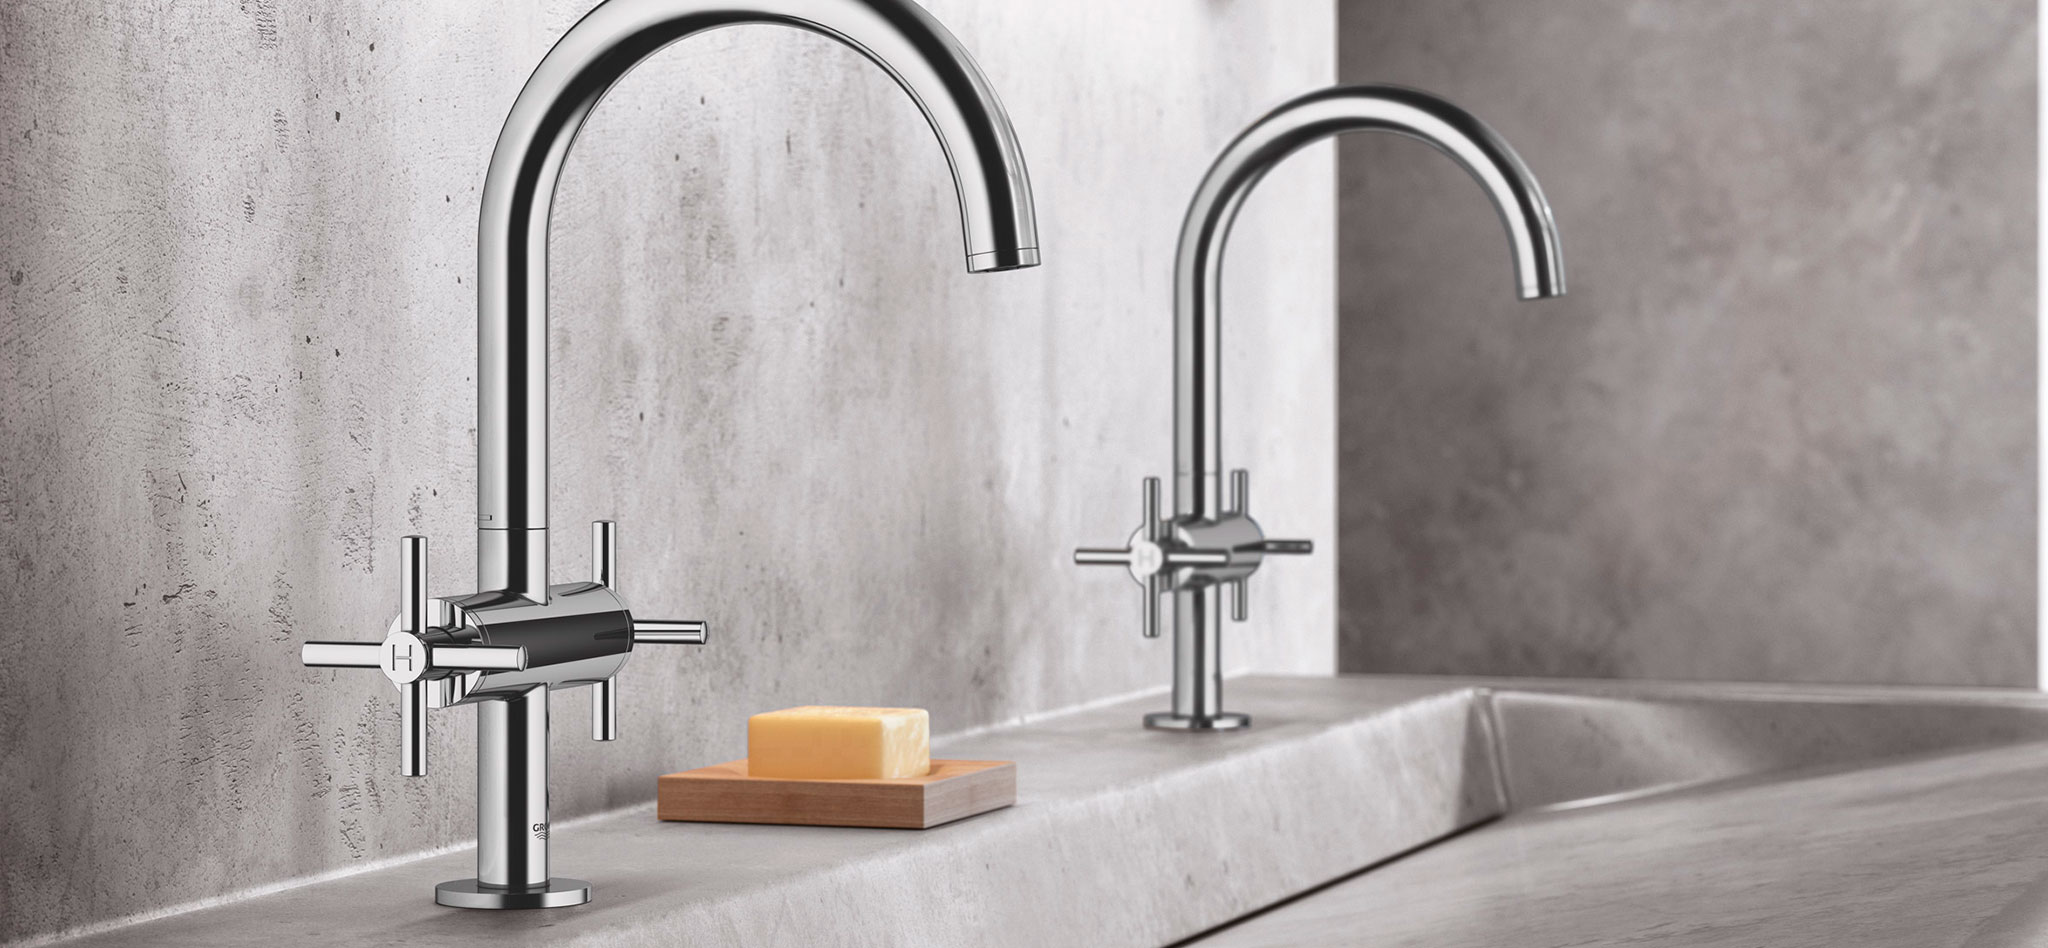 molins-design-visita-grohe-barcelona-showroom